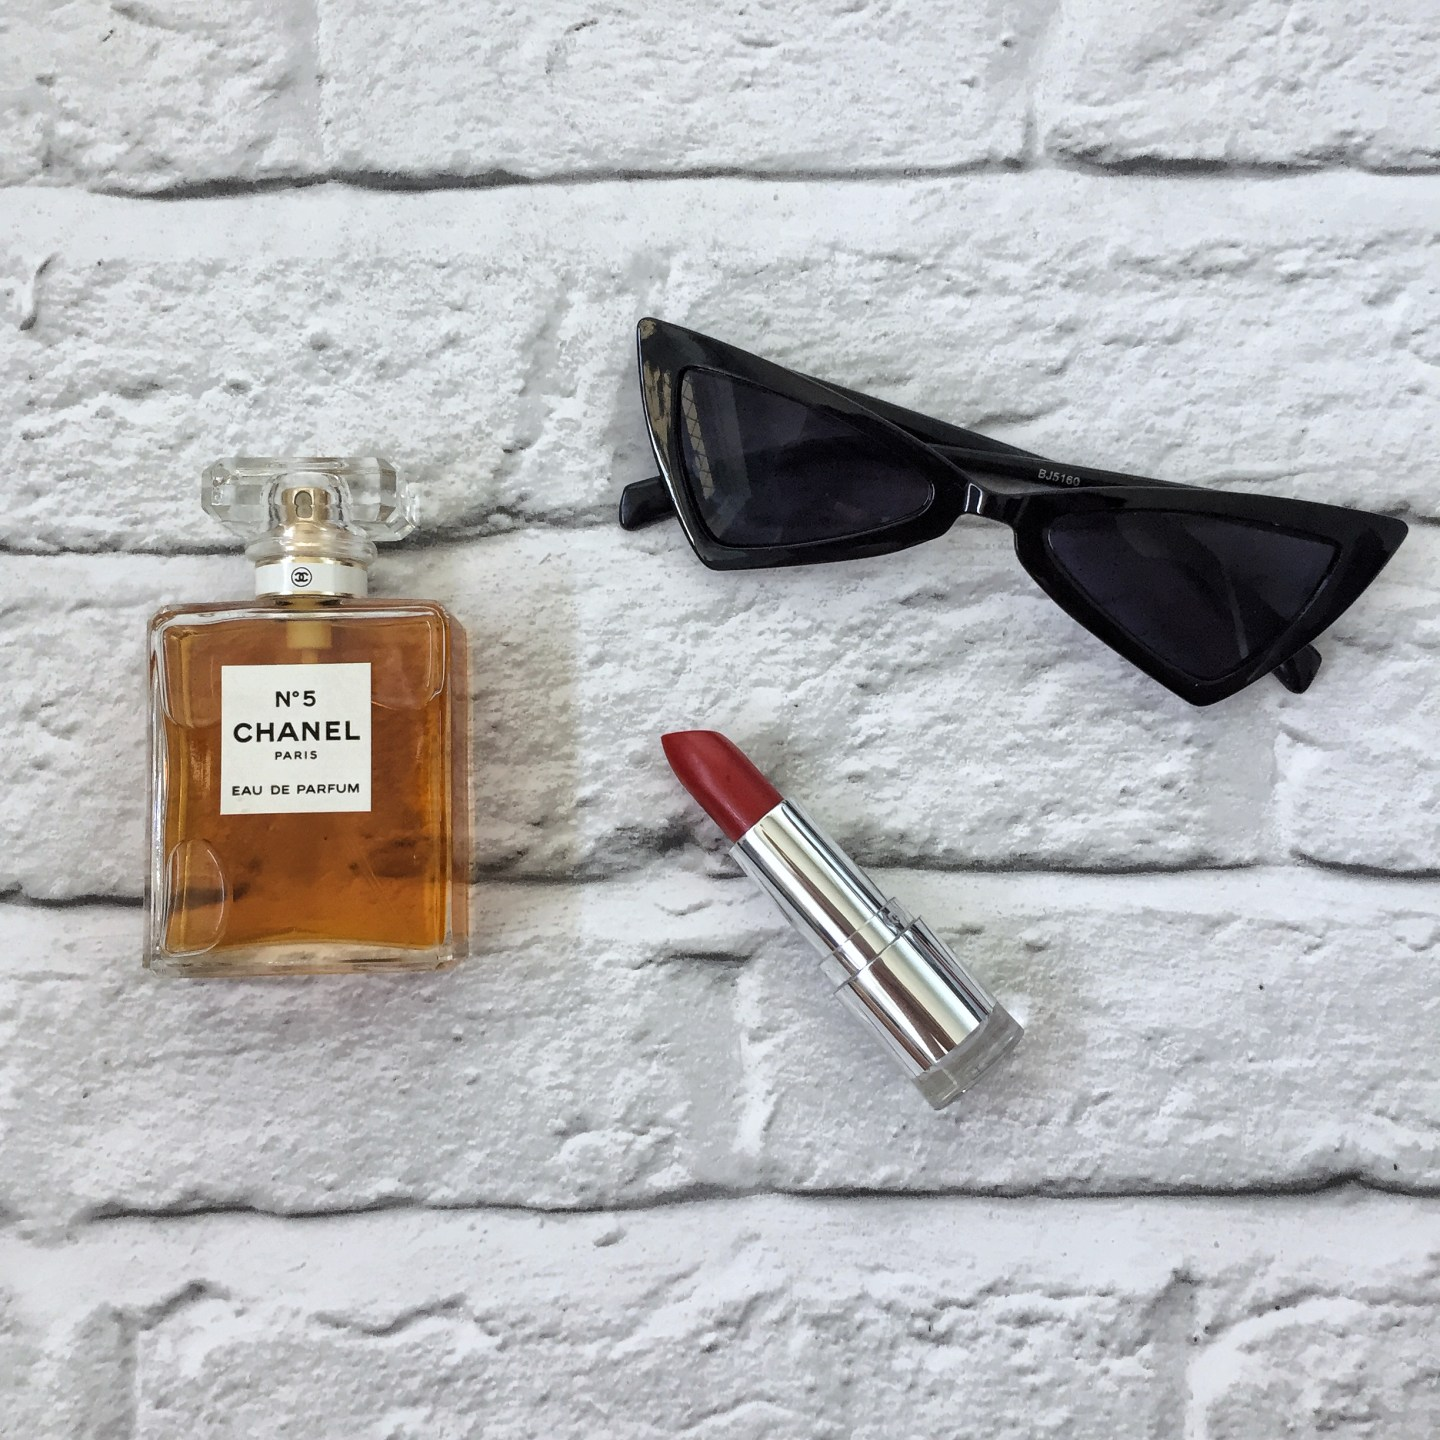 cat eye sunglasses, chanel perfume, red lipstick, ysl dupe sunglasses